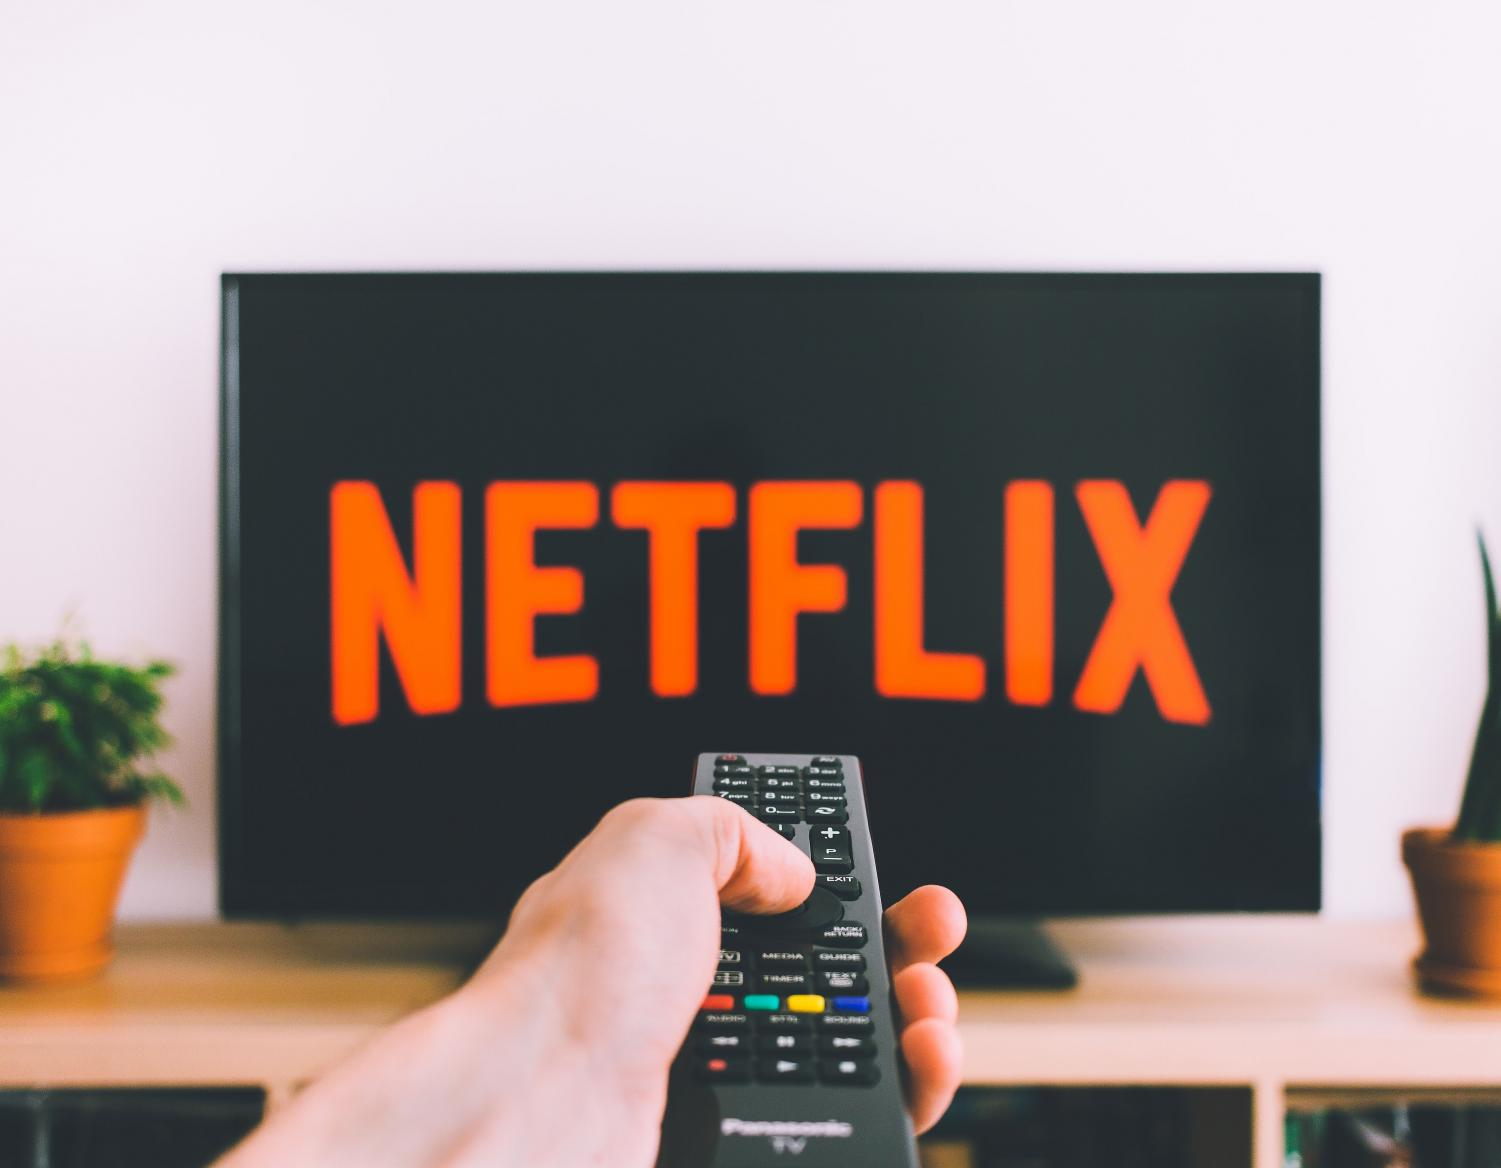 Opinion columnist Sam King shares his opinion on the new AT&T streaming service that was just unveiled for 2019 and how he thinks the market for streaming services is becoming oversaturated.